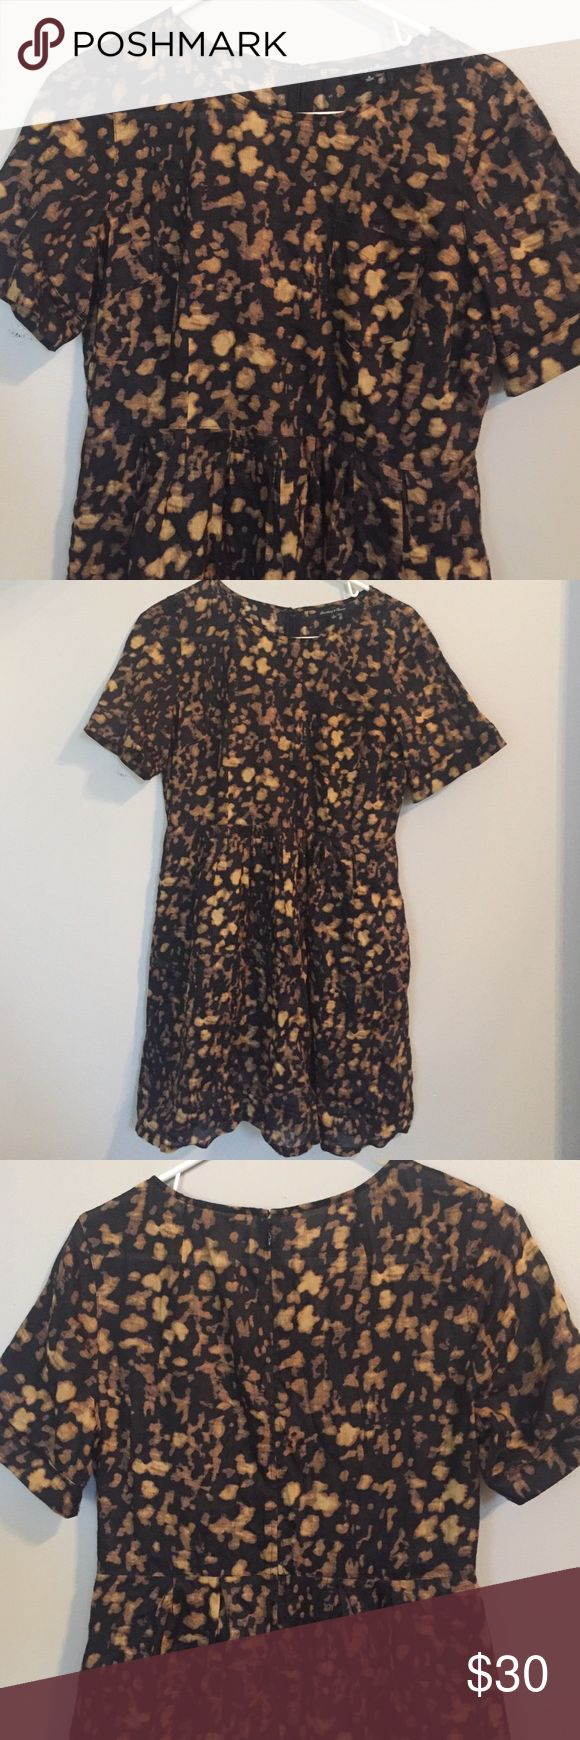 Madewell anima print dress Short sleeved animal print dress with pockets. Sleeves are cuffed and dress has flattering defined waist with bottom pleats. I loved it and wore once but too big now from smoke and pet feed house. Madewell Dresses